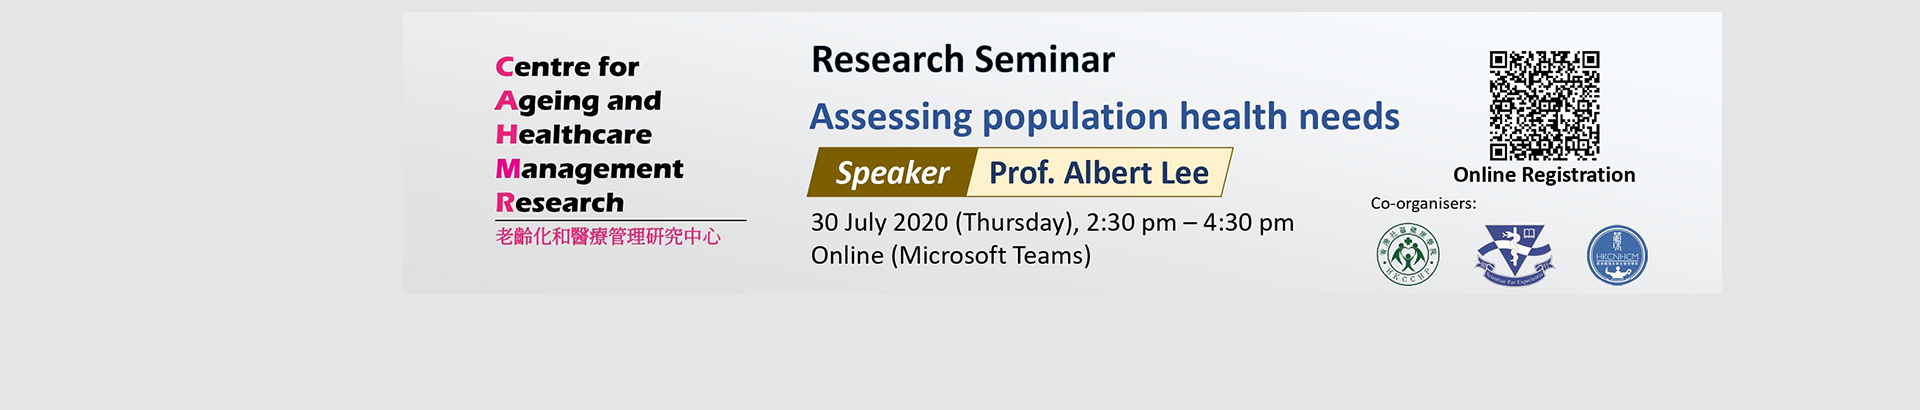 CAHMR Research Seminar (30 July 2020)